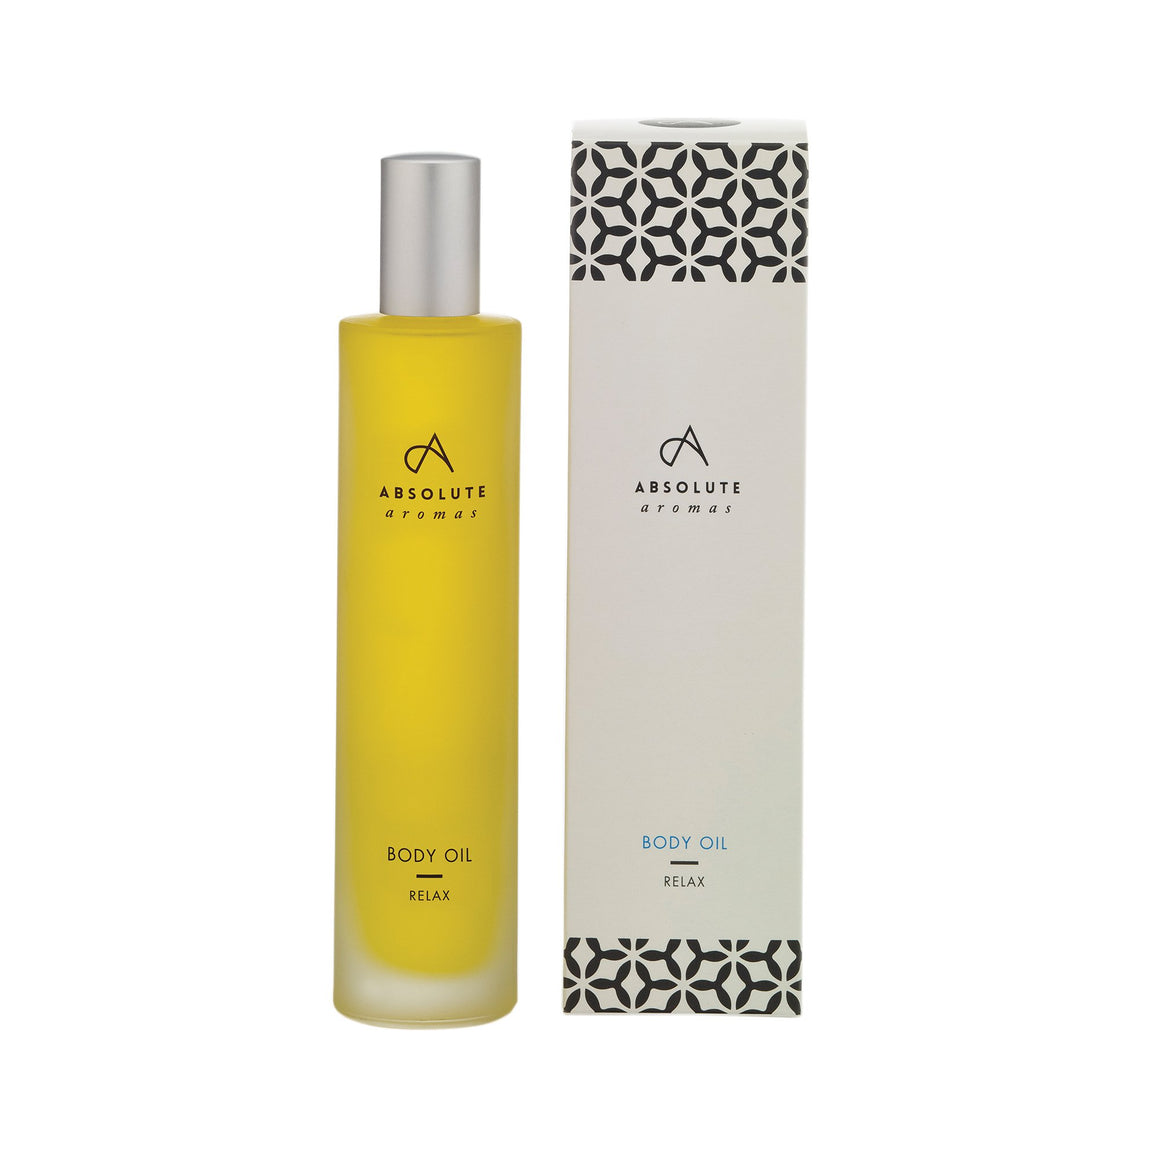 Absolute Aromas Relax Body Oil 3.38 Fl. Oz.